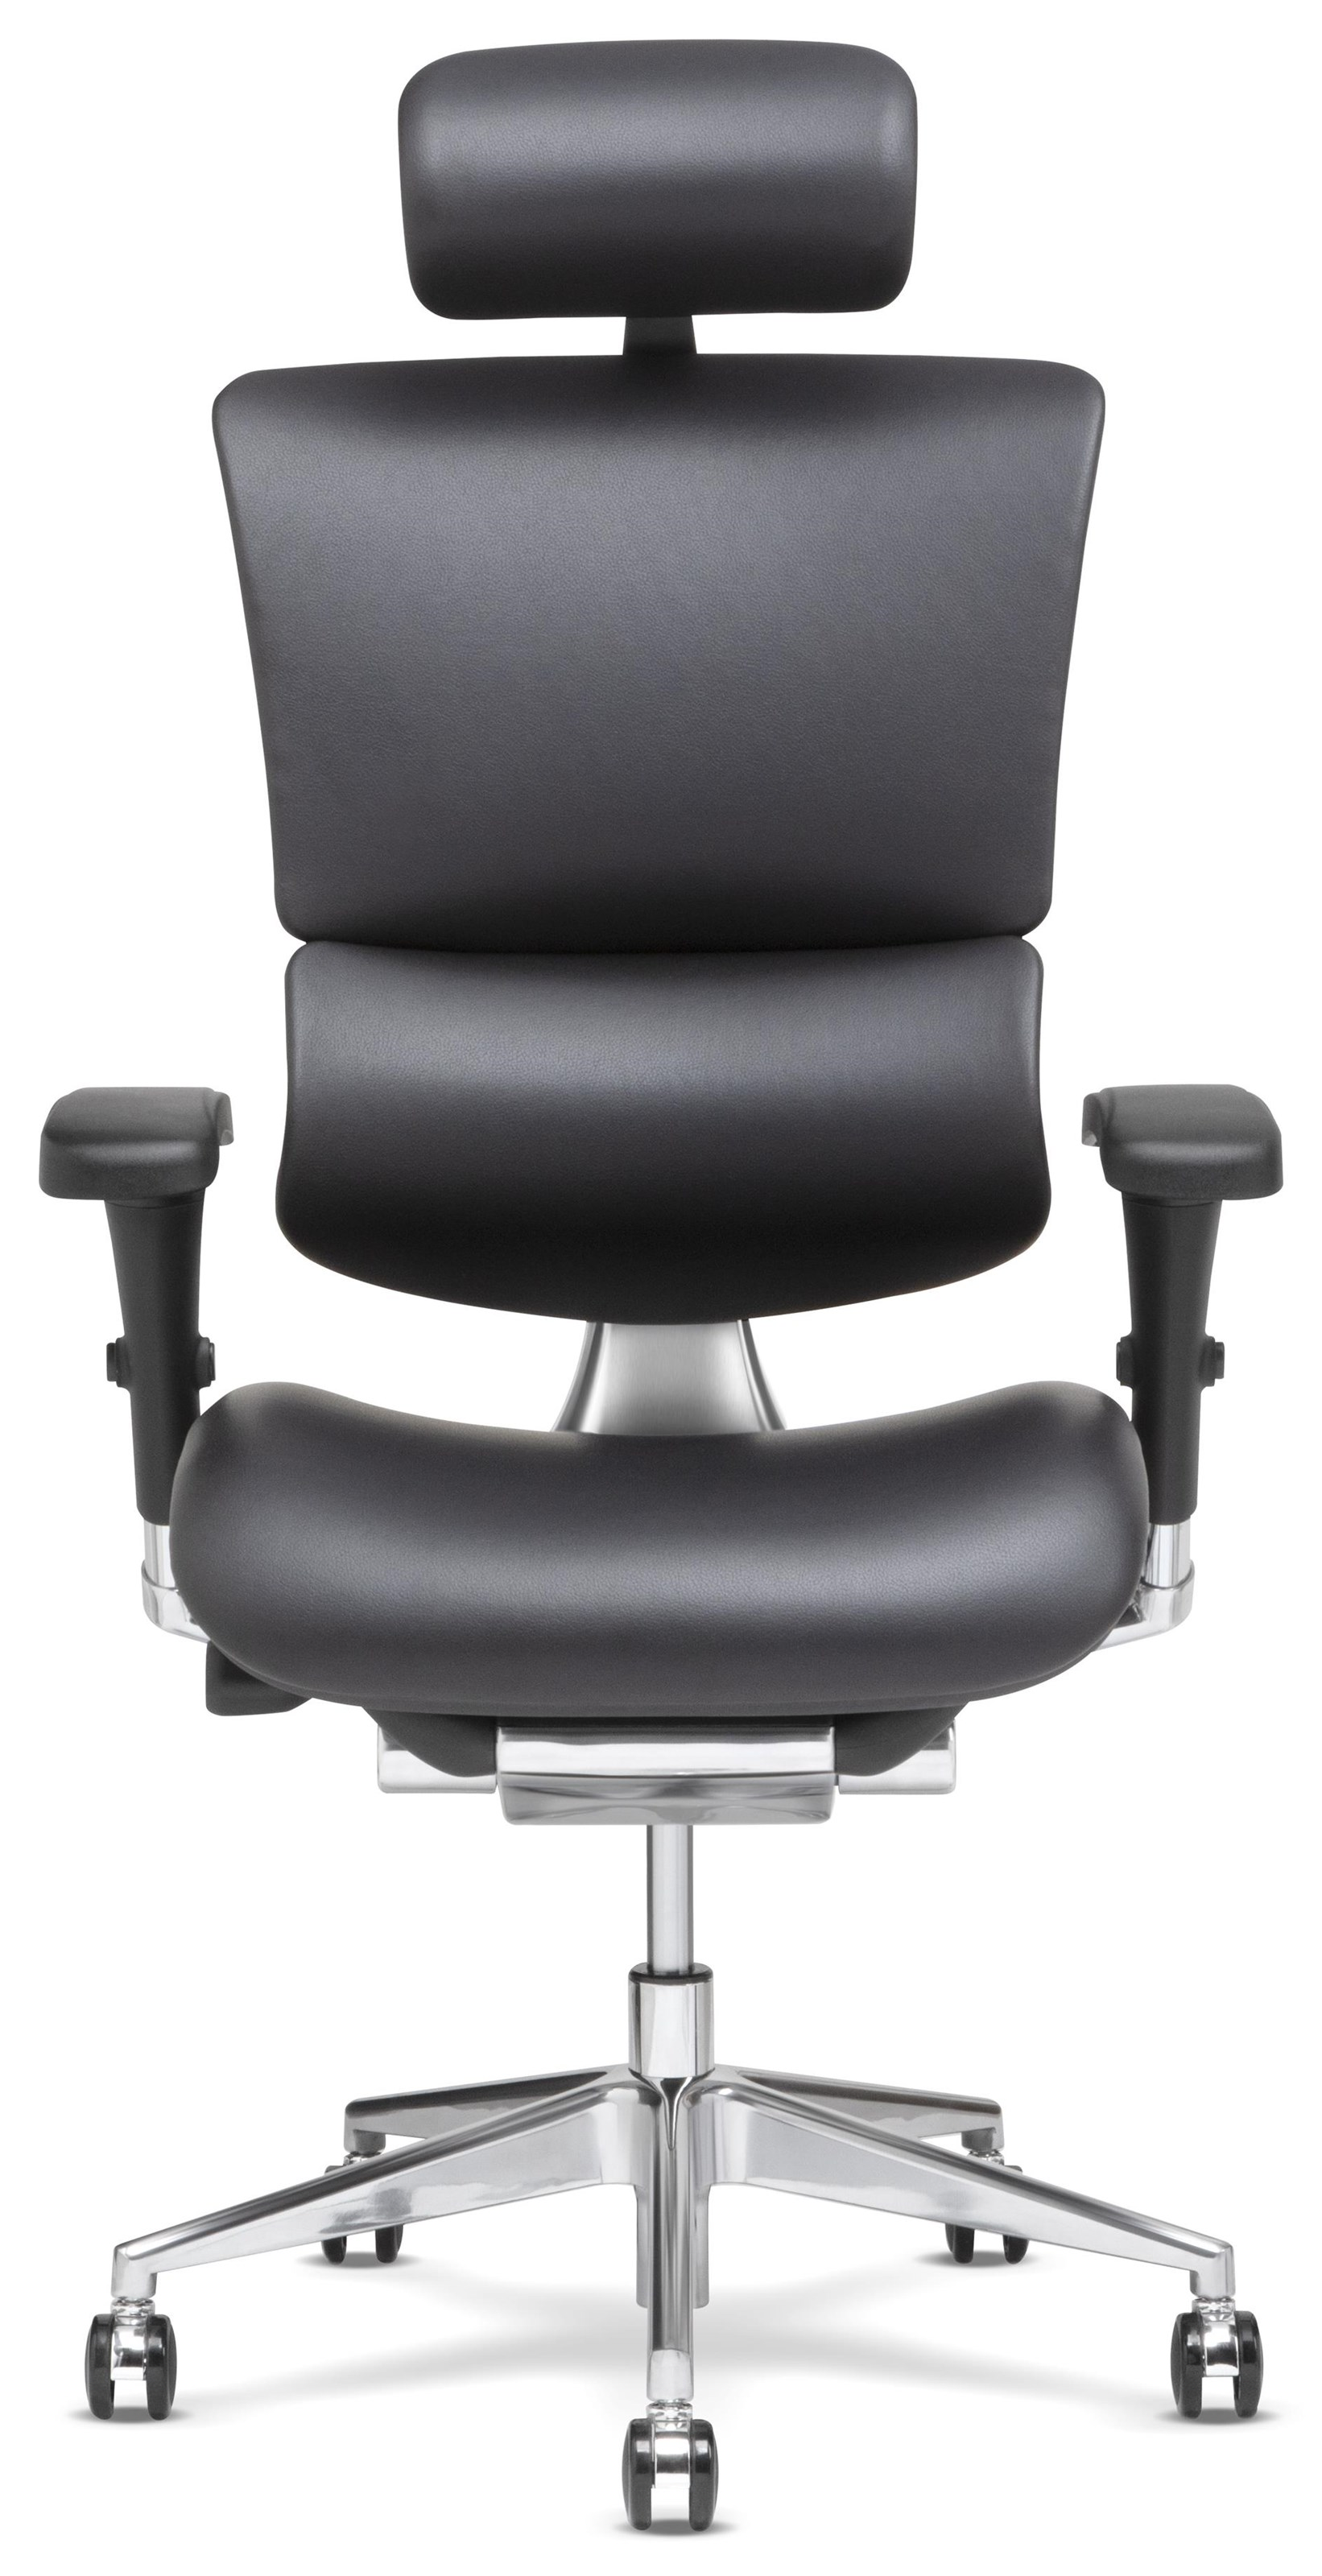 X-HMT® Heat and Massage Chair